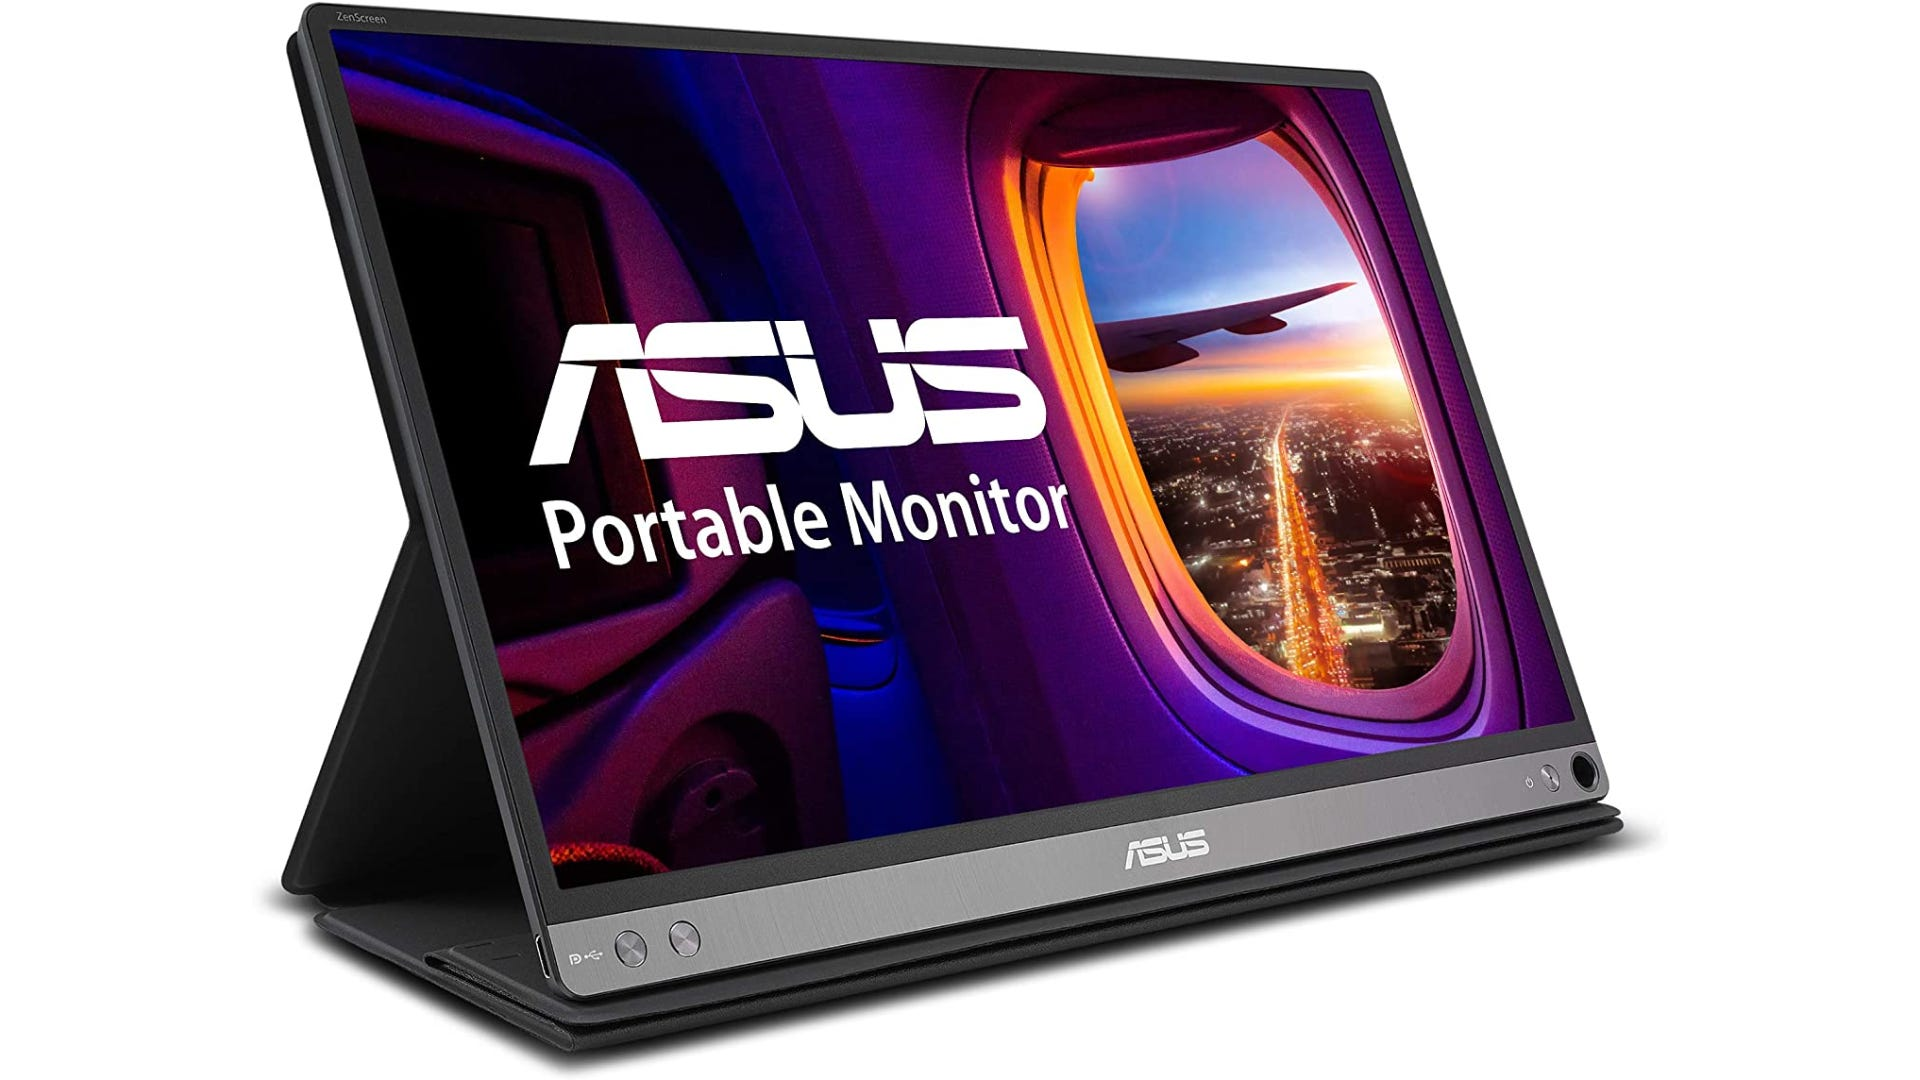 ASUS portable monitor standing up and showing high-quality image definition